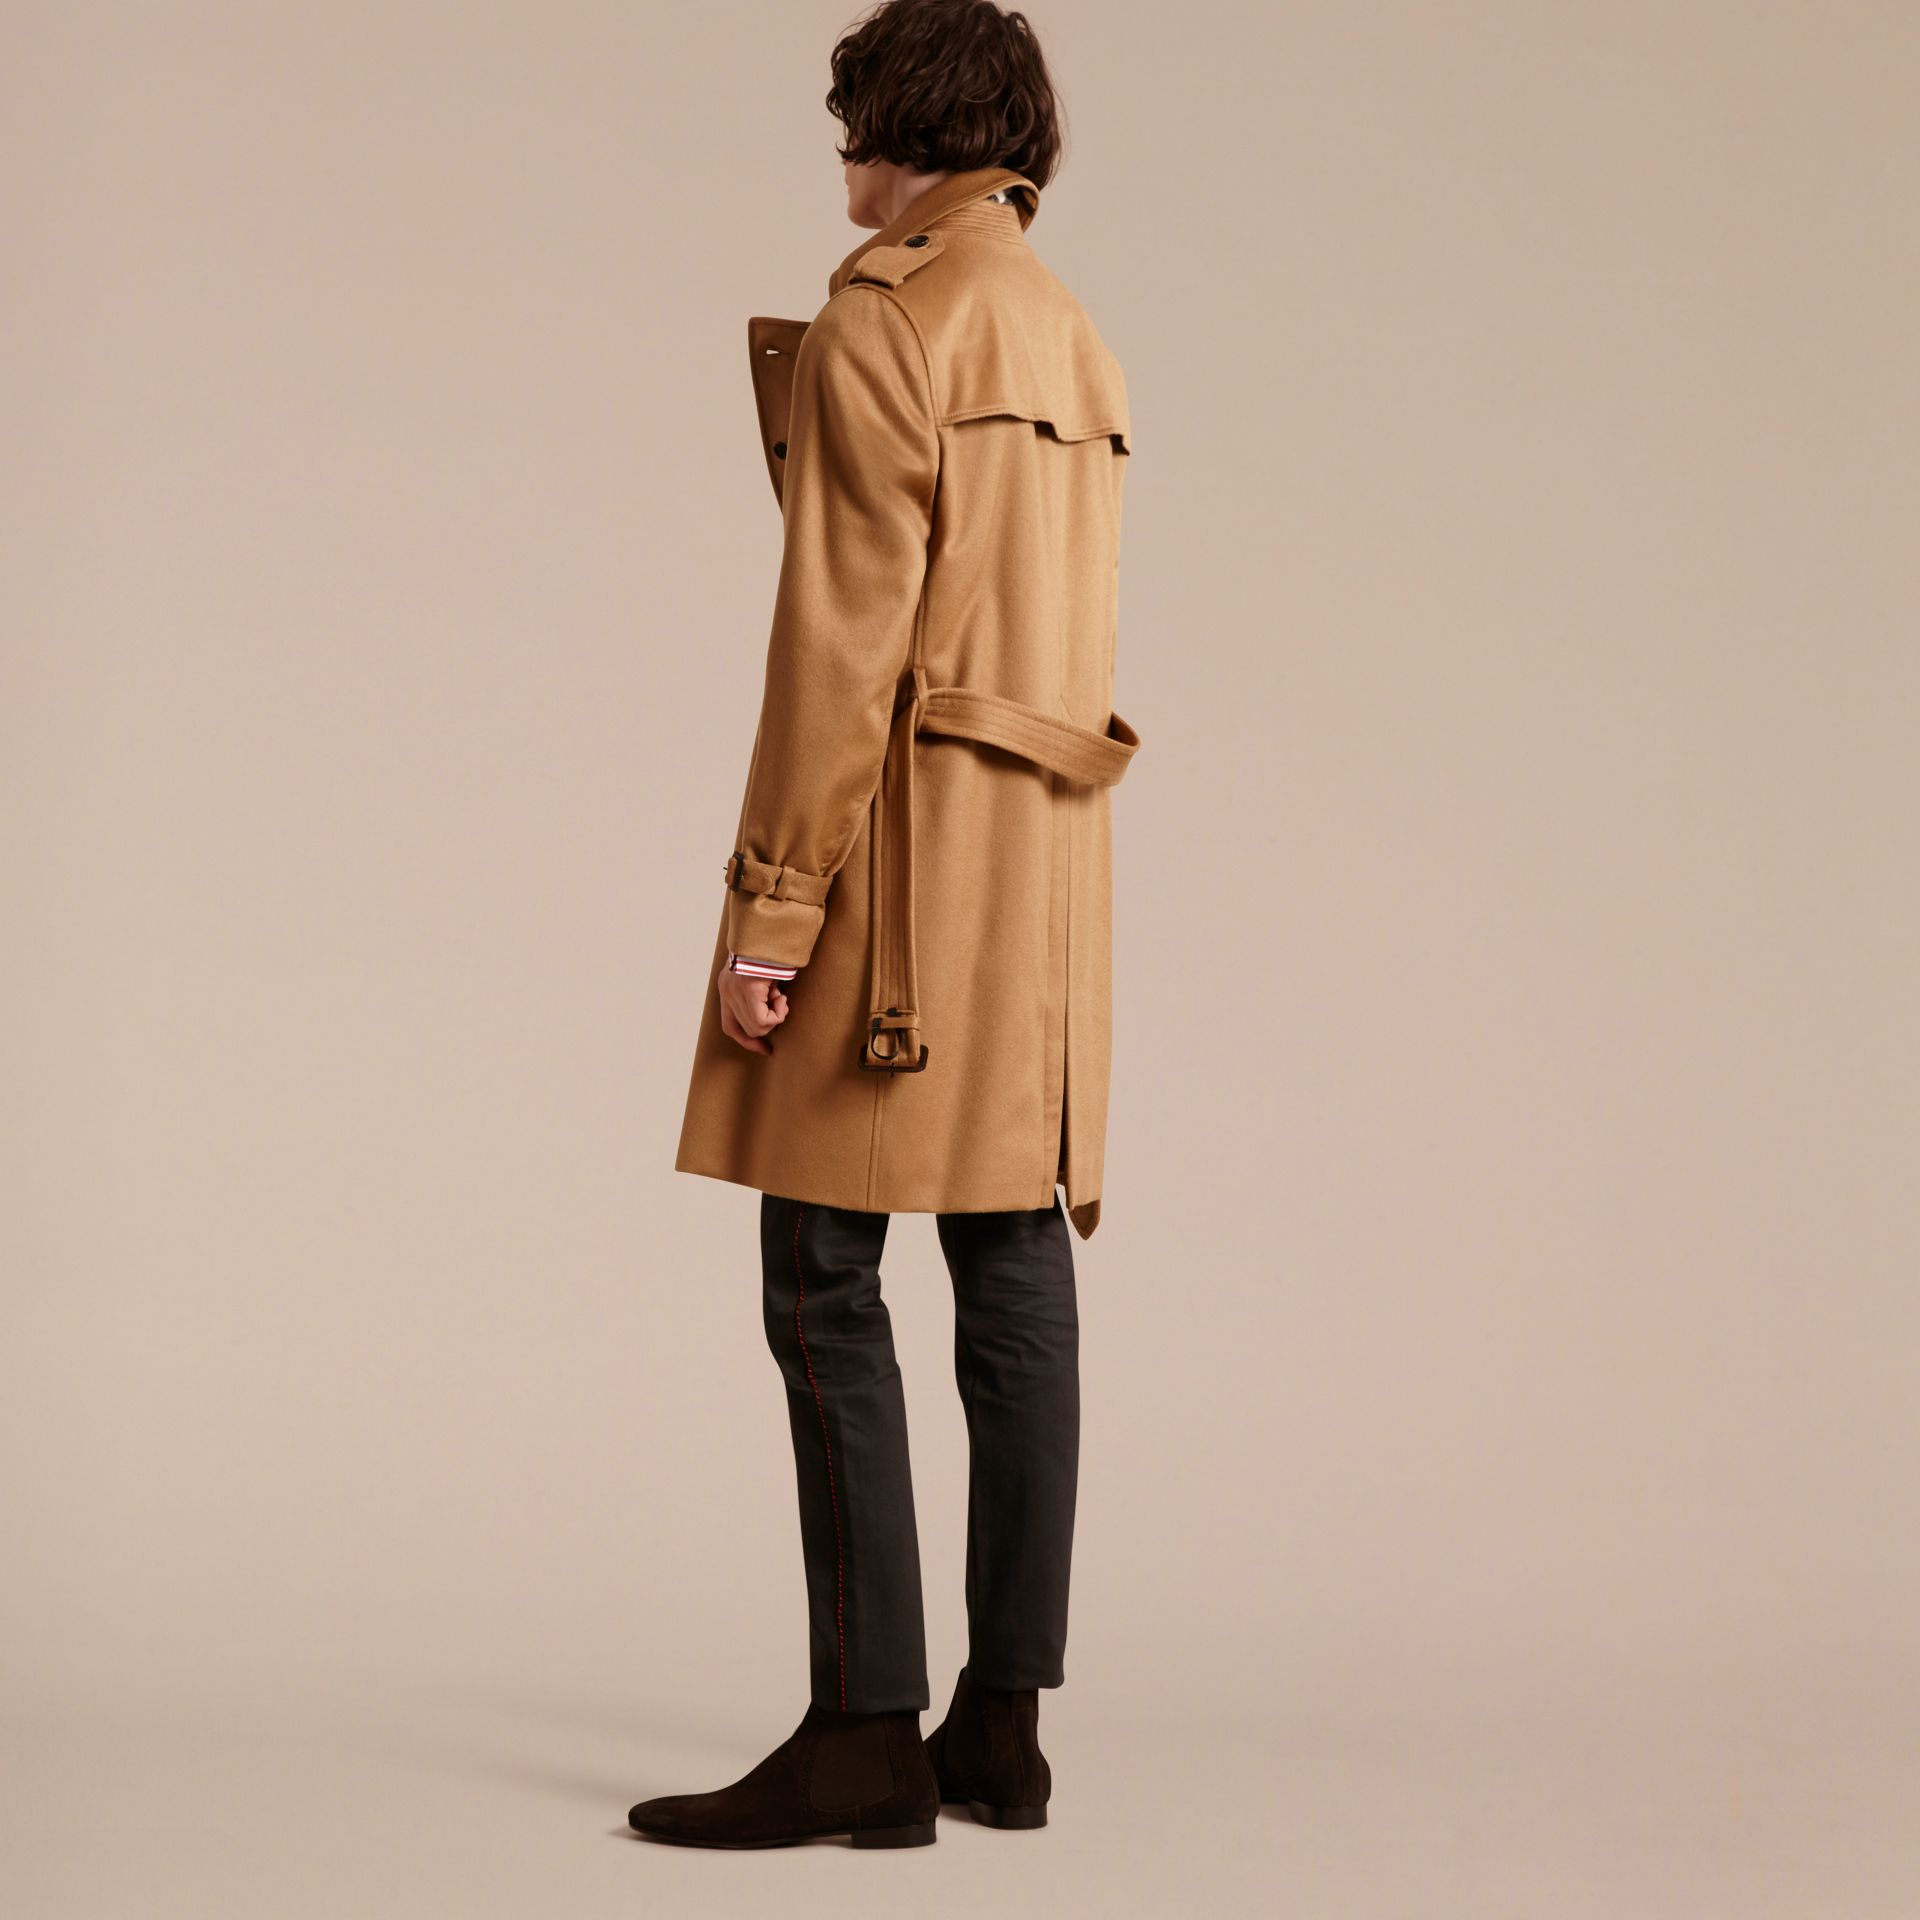 Cashmere Trench Coat in Dark Camel - Men | Burberry United States - gallery image 3